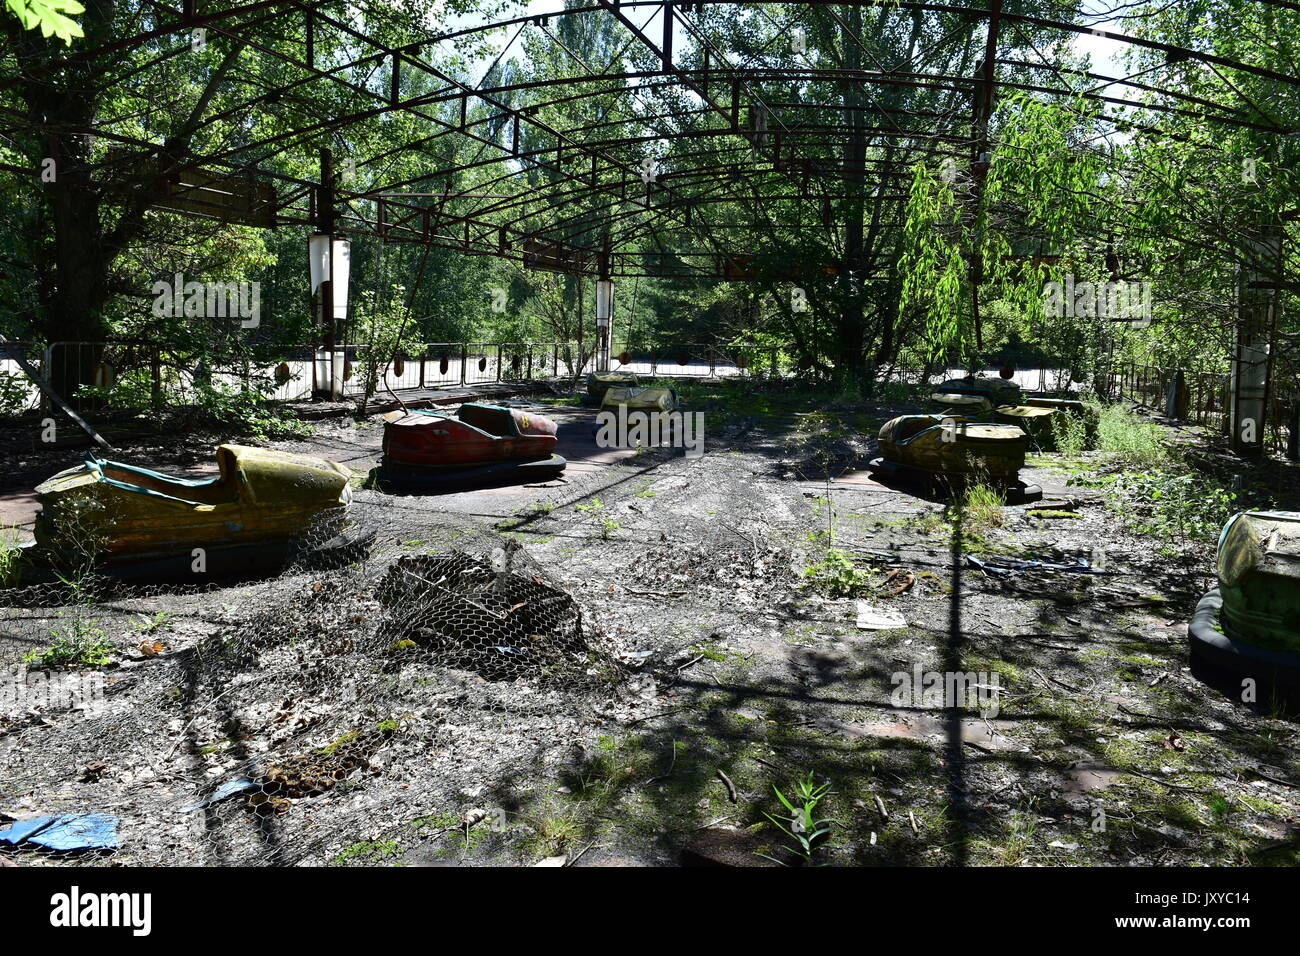 Abandoned Fun fair amusement park Chernobyl exclusion zone - Stock Image